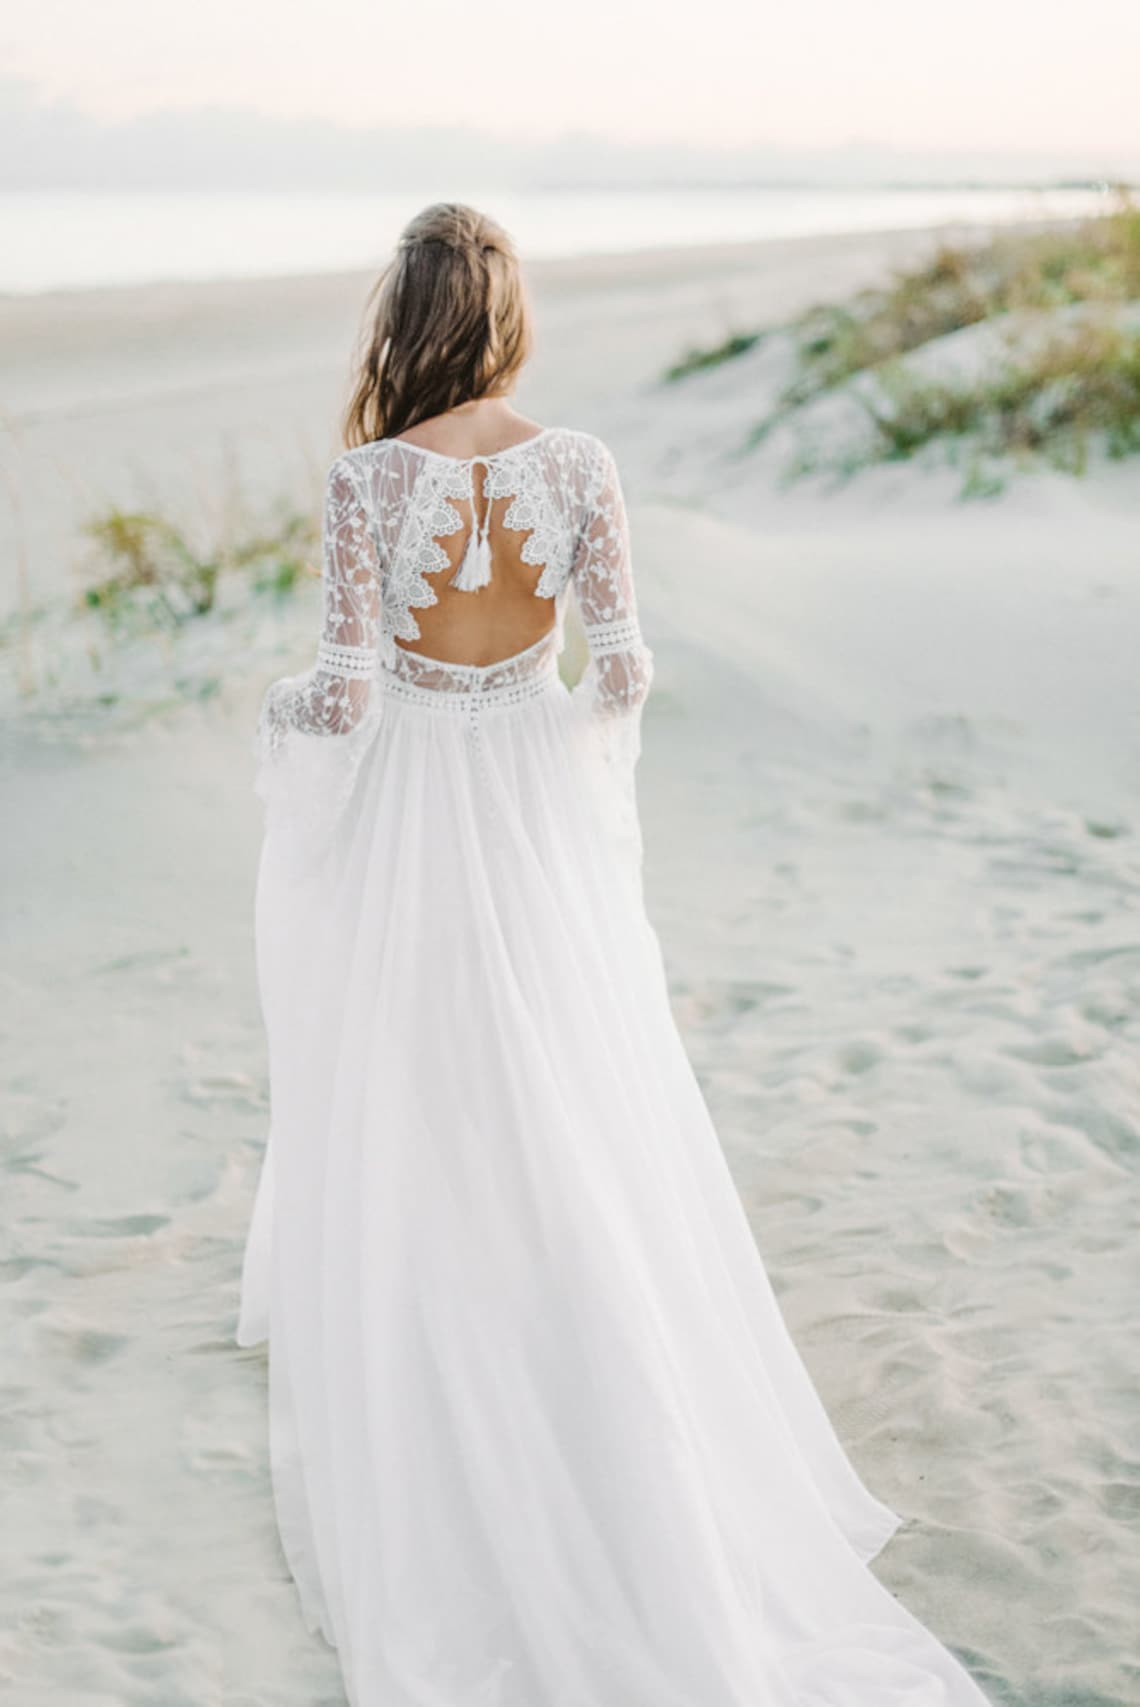 Casual Wedding Dresses With Sleeves On Sale, UP TO 18 OFF